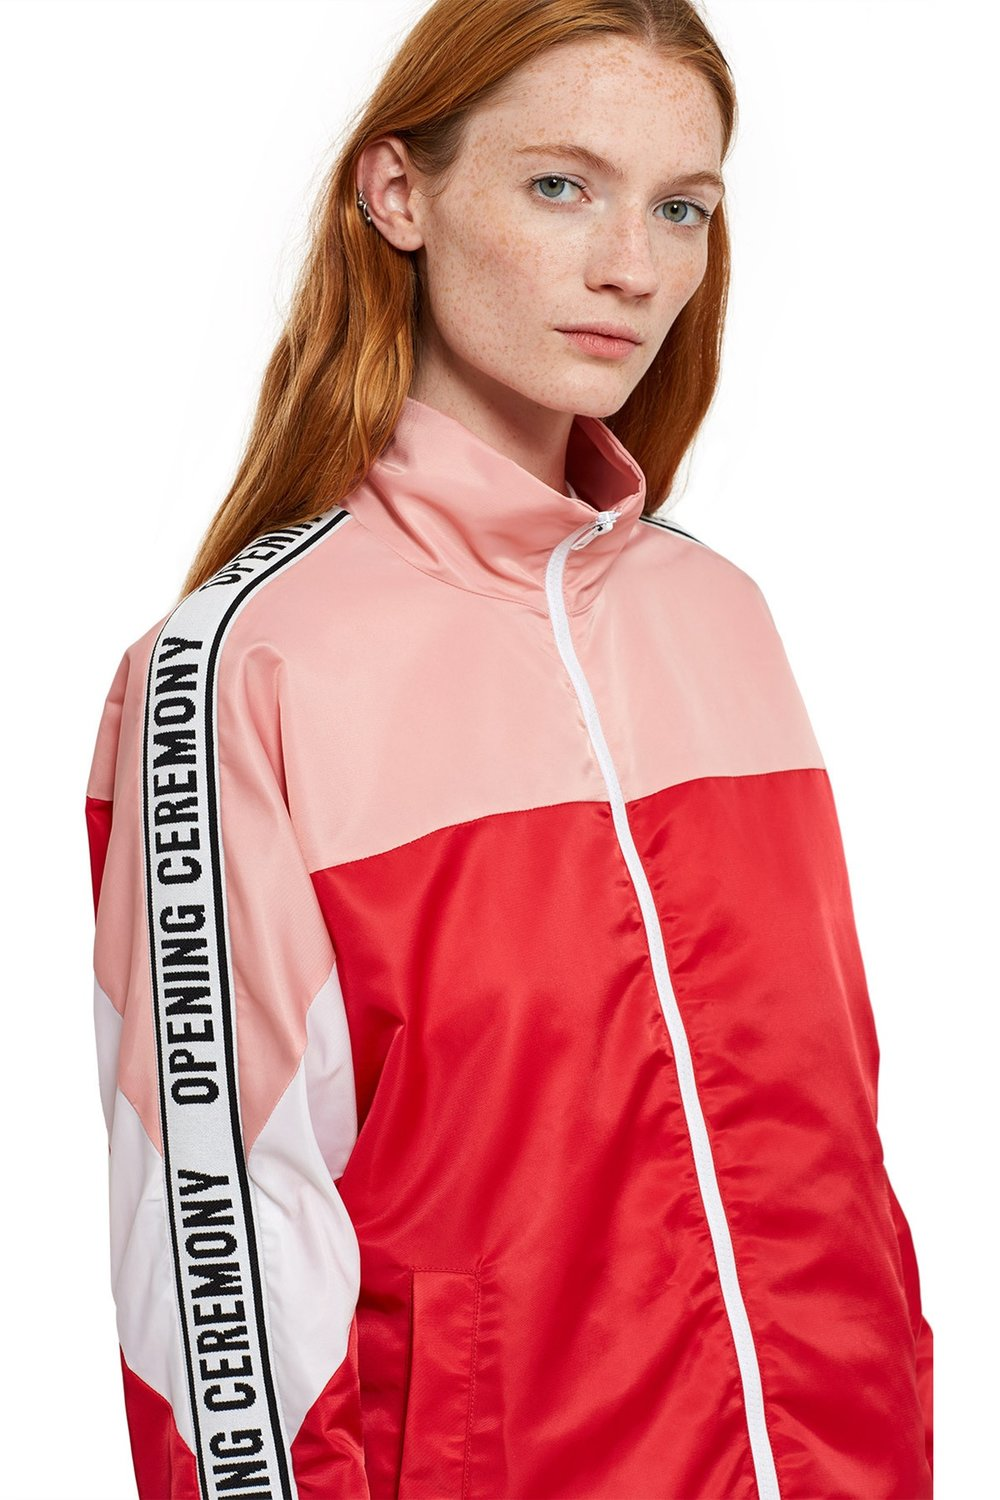 CNK-Opening-Ceremony-Track-Jacket-1.jpg